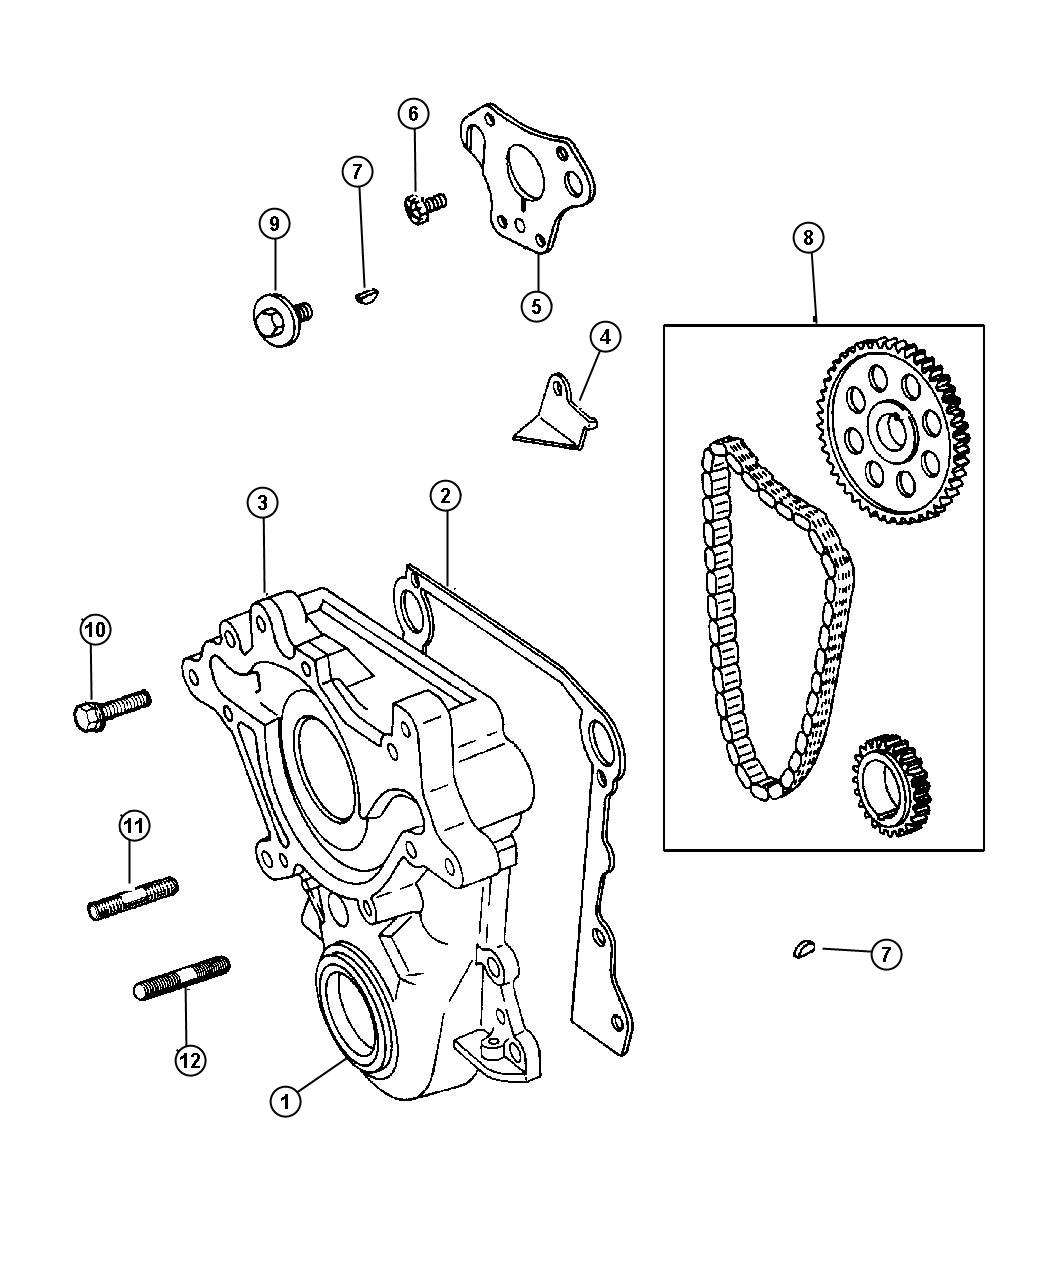 suzuki sx4 parts diagram